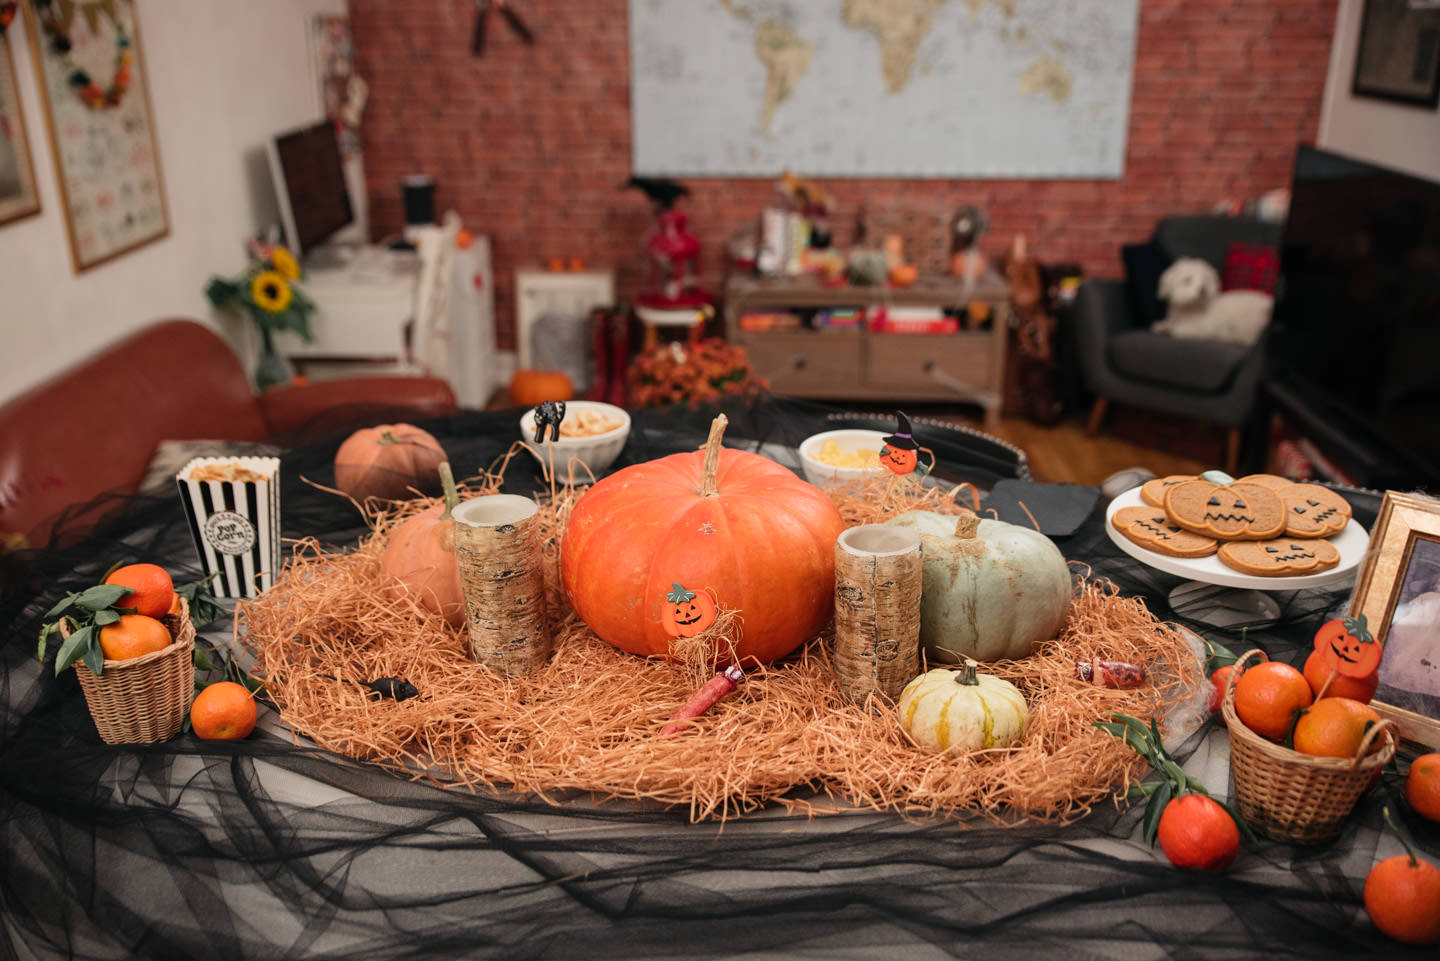 Blog-Mode-And-The-City-Lifestyle-Halloween-2017-6